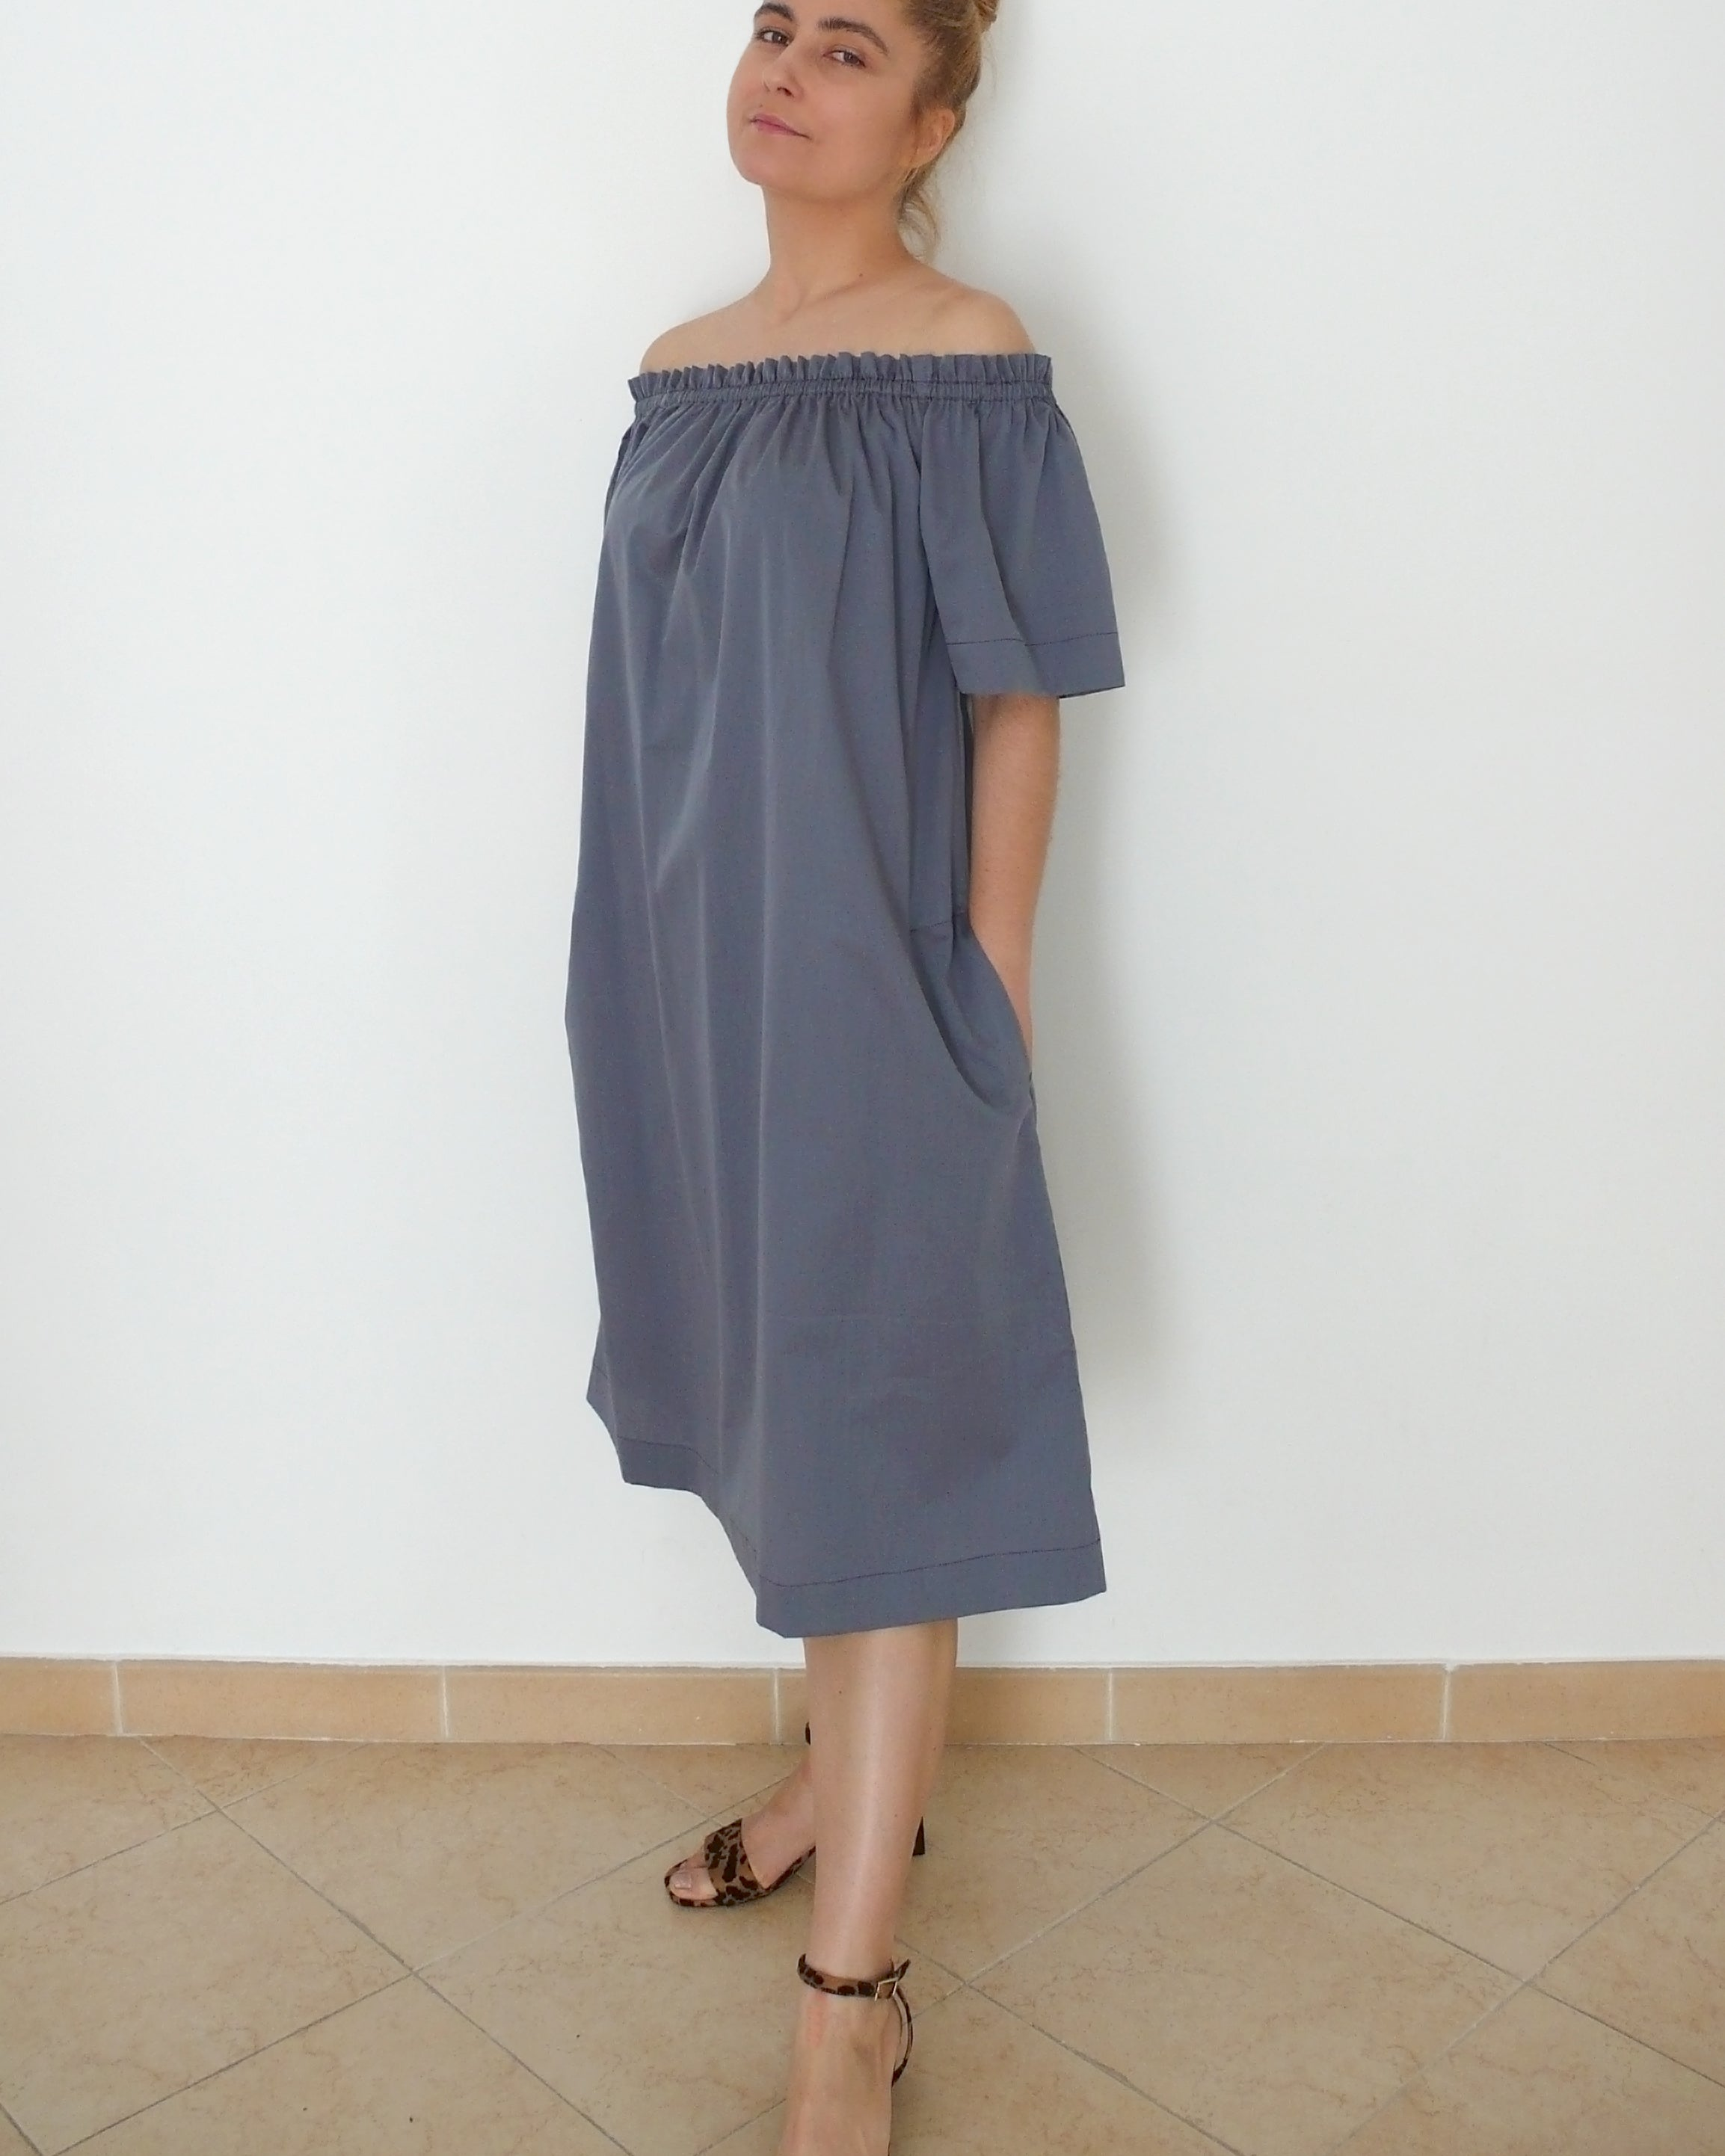 Off-shoulder Woven Summer Top or Dress with short or long sleeve and Inseam Pockets